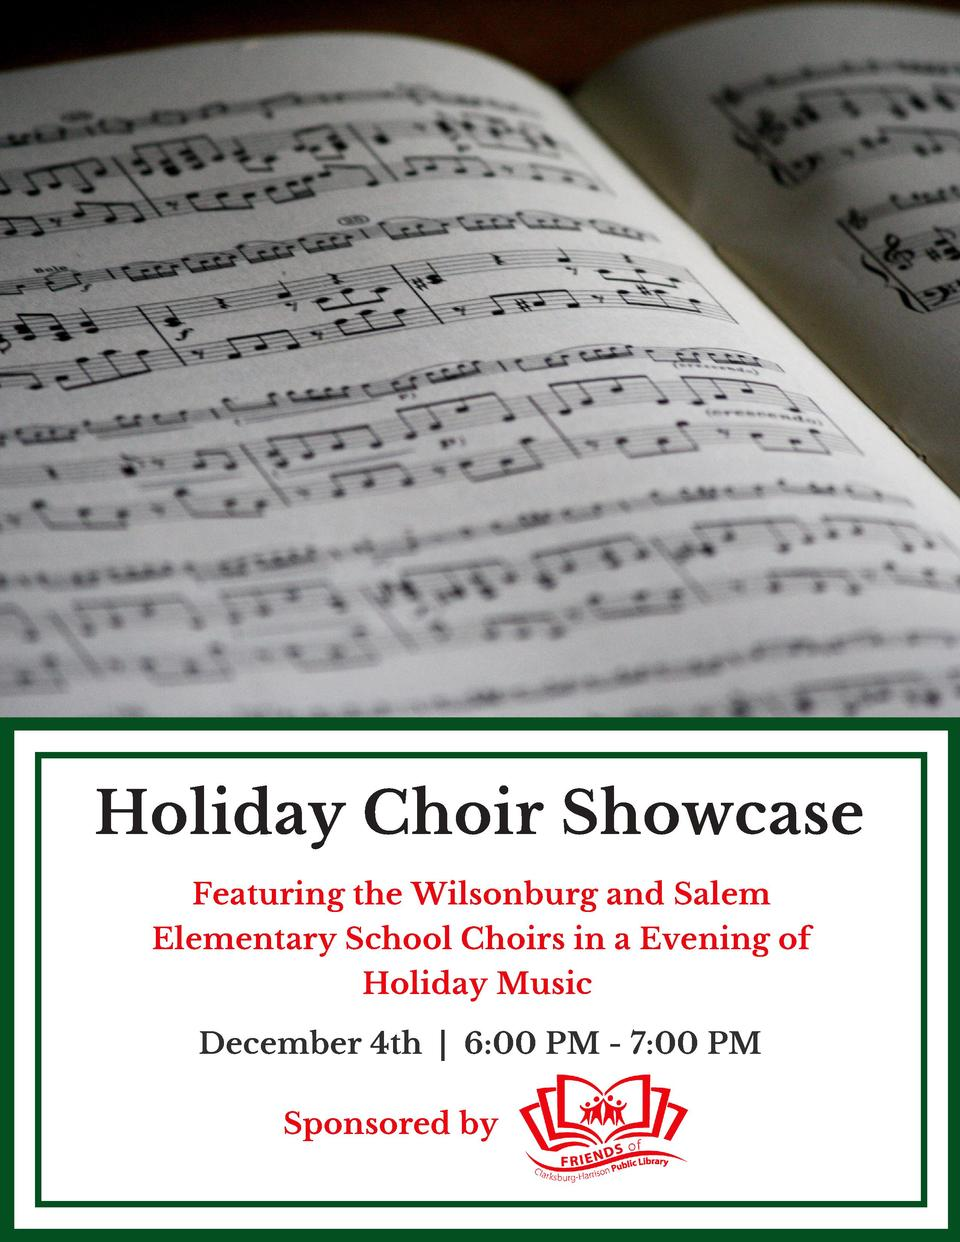 Holiday Choir Showcase Featuring the Wilsonburg and Salem Elementary School Choirs in a Evening of Holiday Music   Decembe...